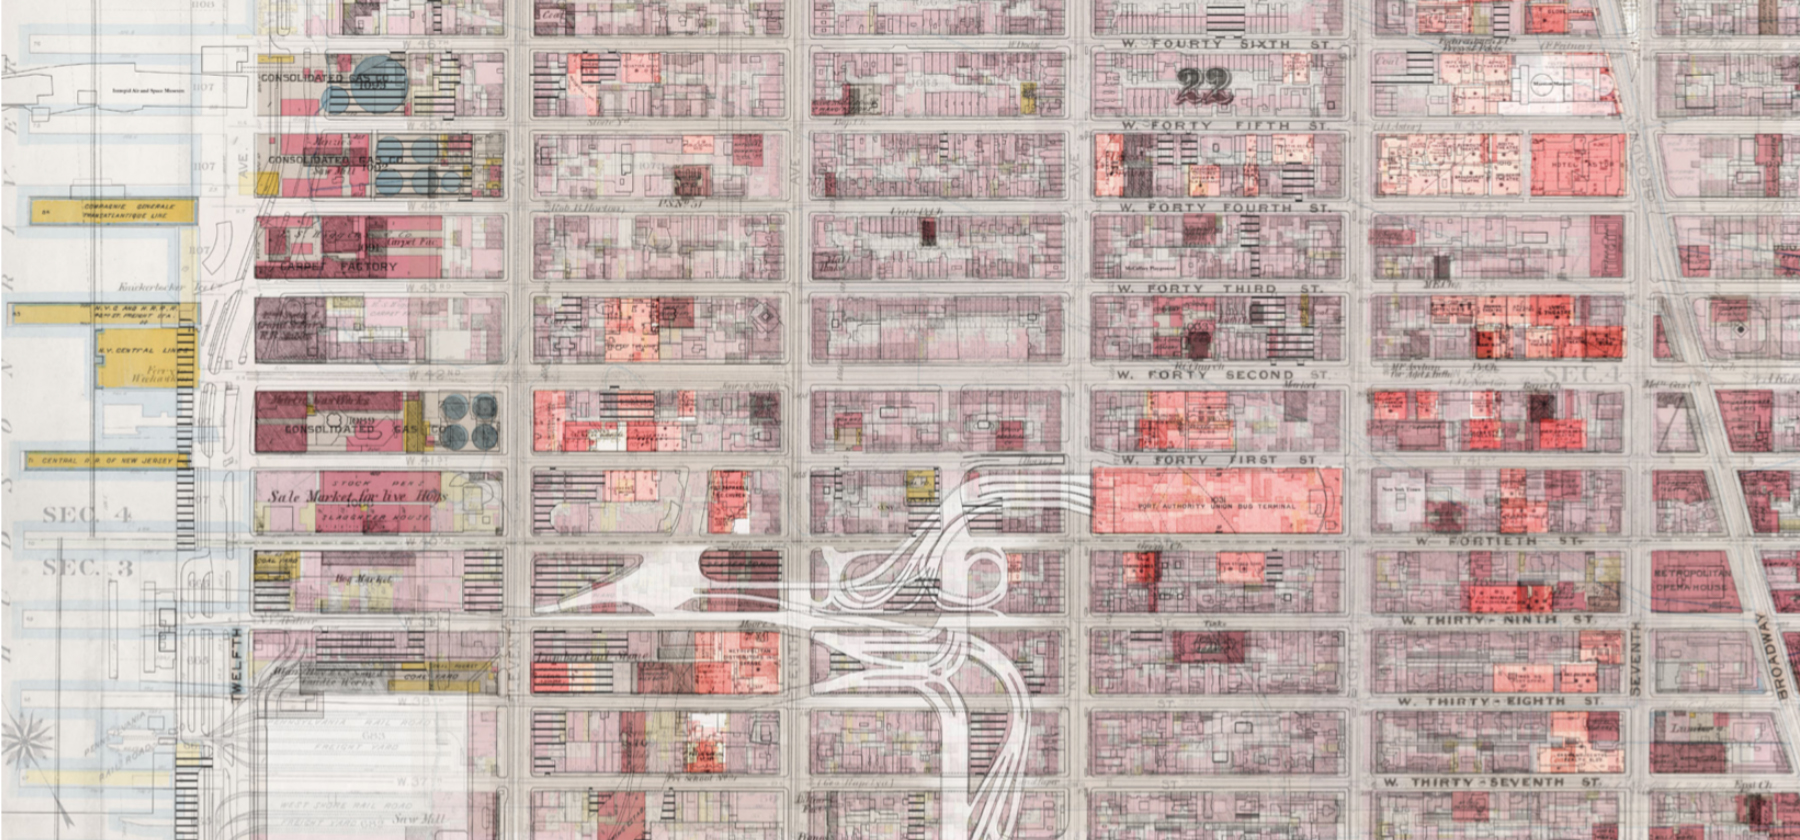 https://aap.cornell.edu/A%20series%20of%20pink%20rectangles%20forming%20a%20grid%20depicting%20a%20building%20layout.